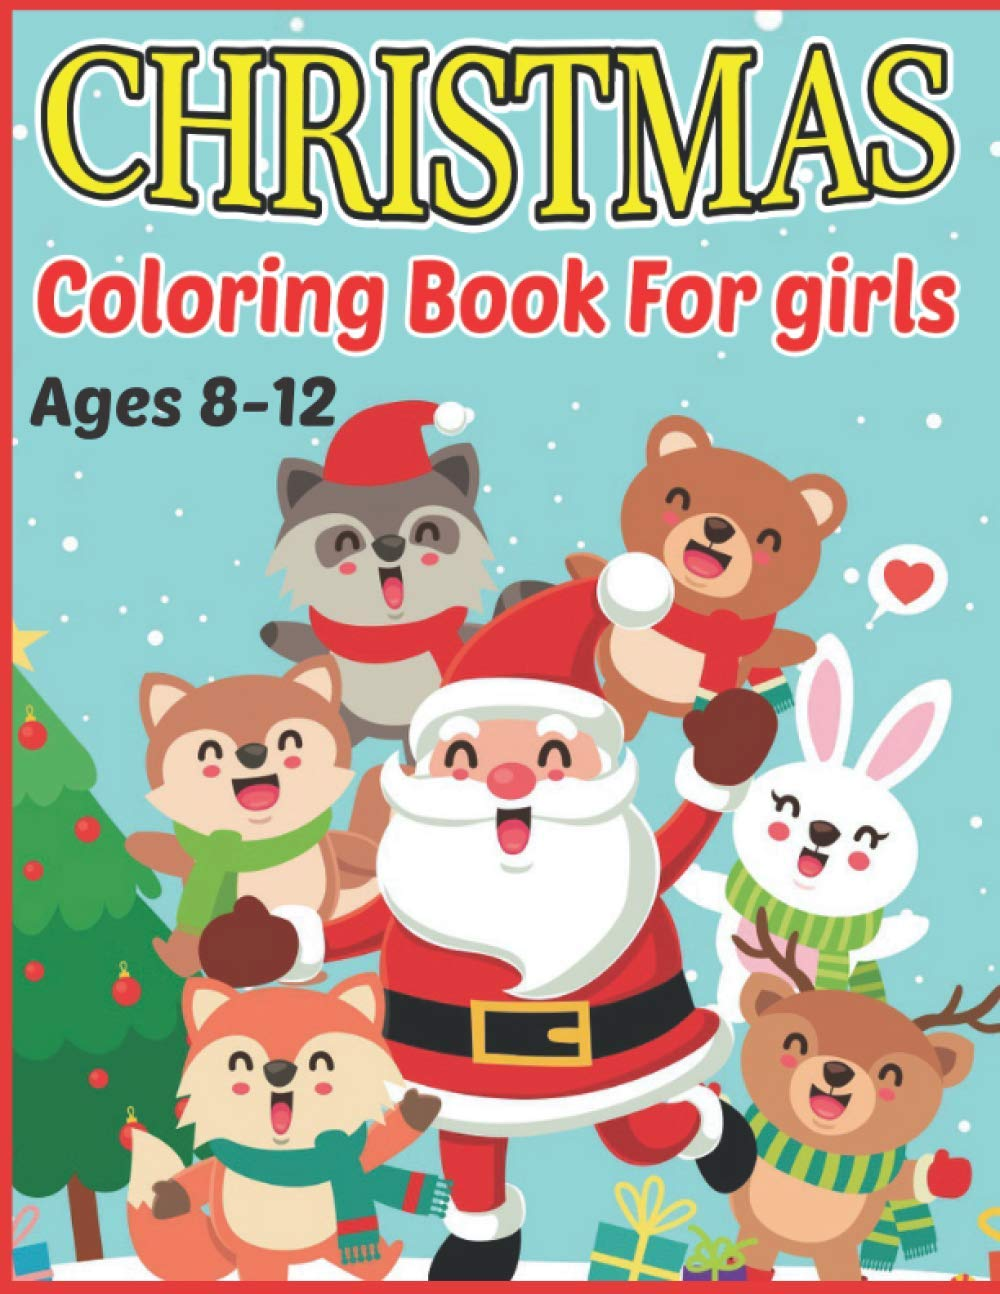 Best Gift Books Christmas 2020 Christmas Coloring Book For Girls Ages 8 12: best gift for your